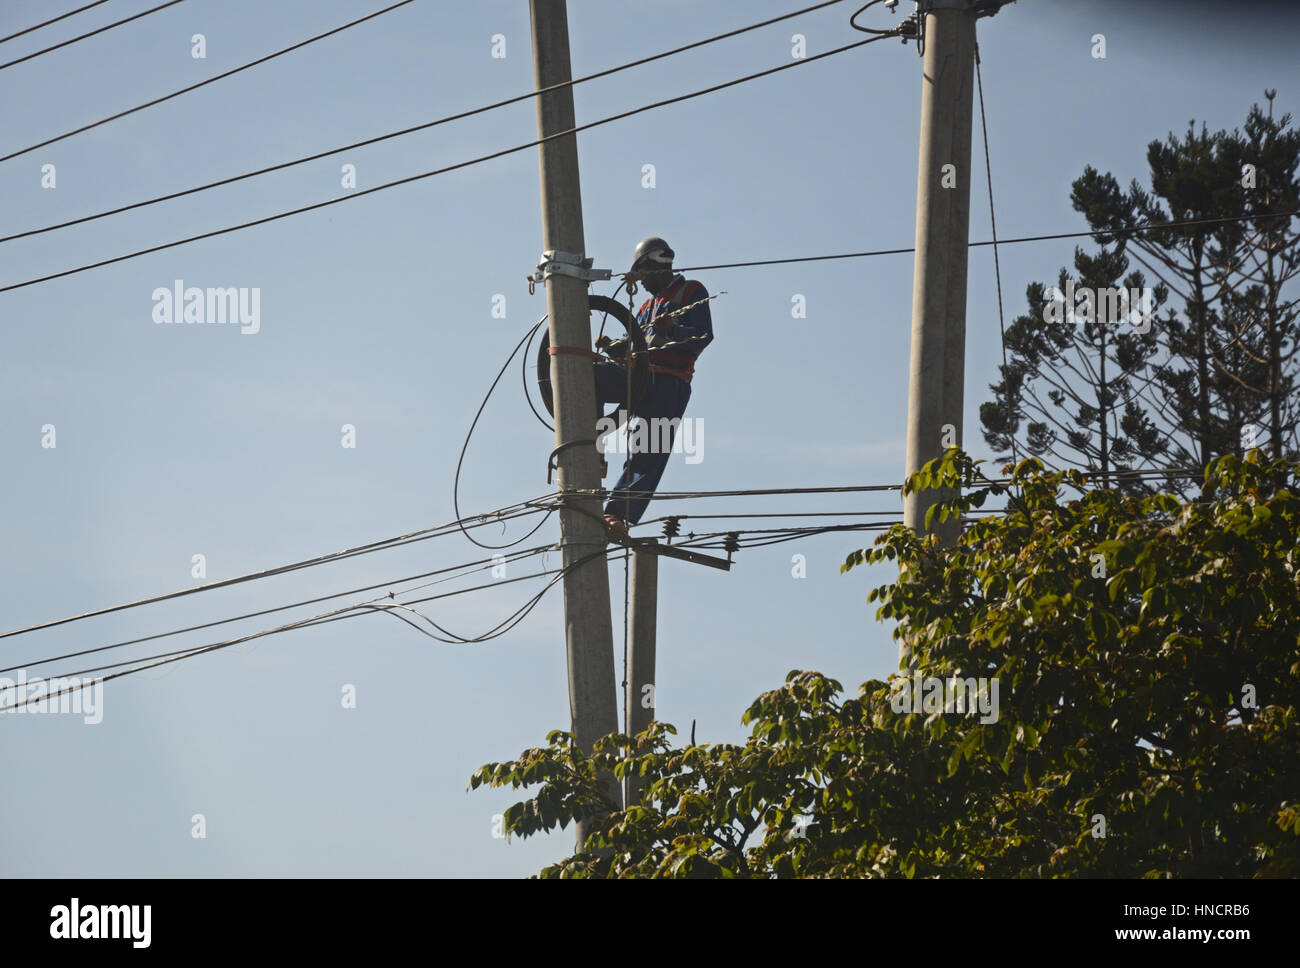 Electricity worker on pole,  Nairobi, Kenya - Stock Image